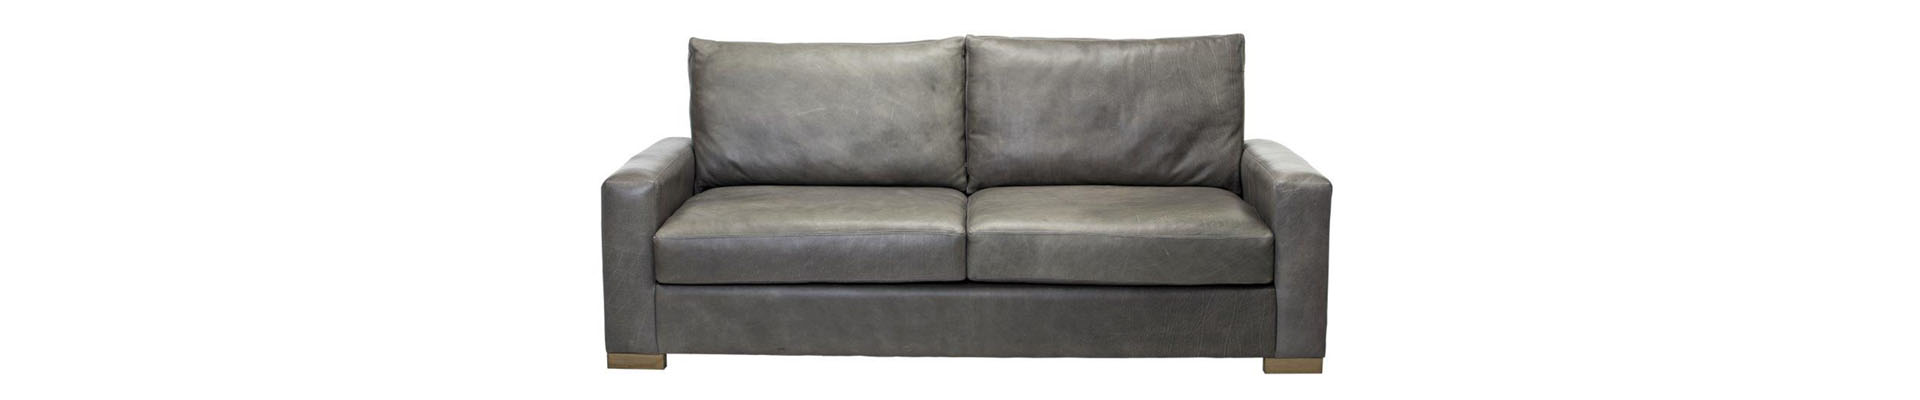 KLOOF LEATHER FRONT ON slider